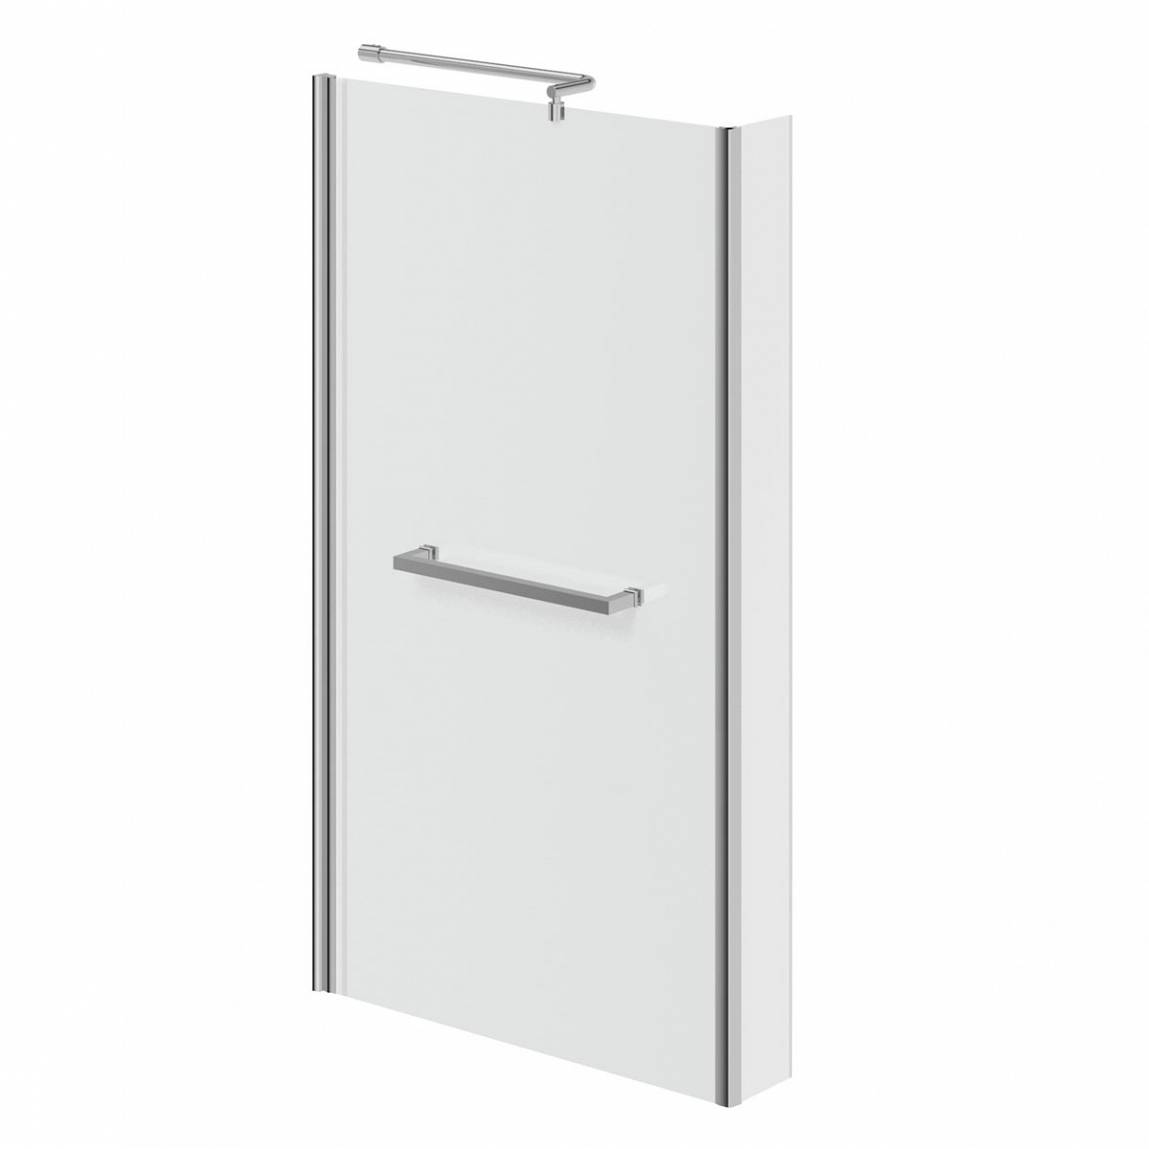 Image of Square Shower Bath Screen with Towel Rail